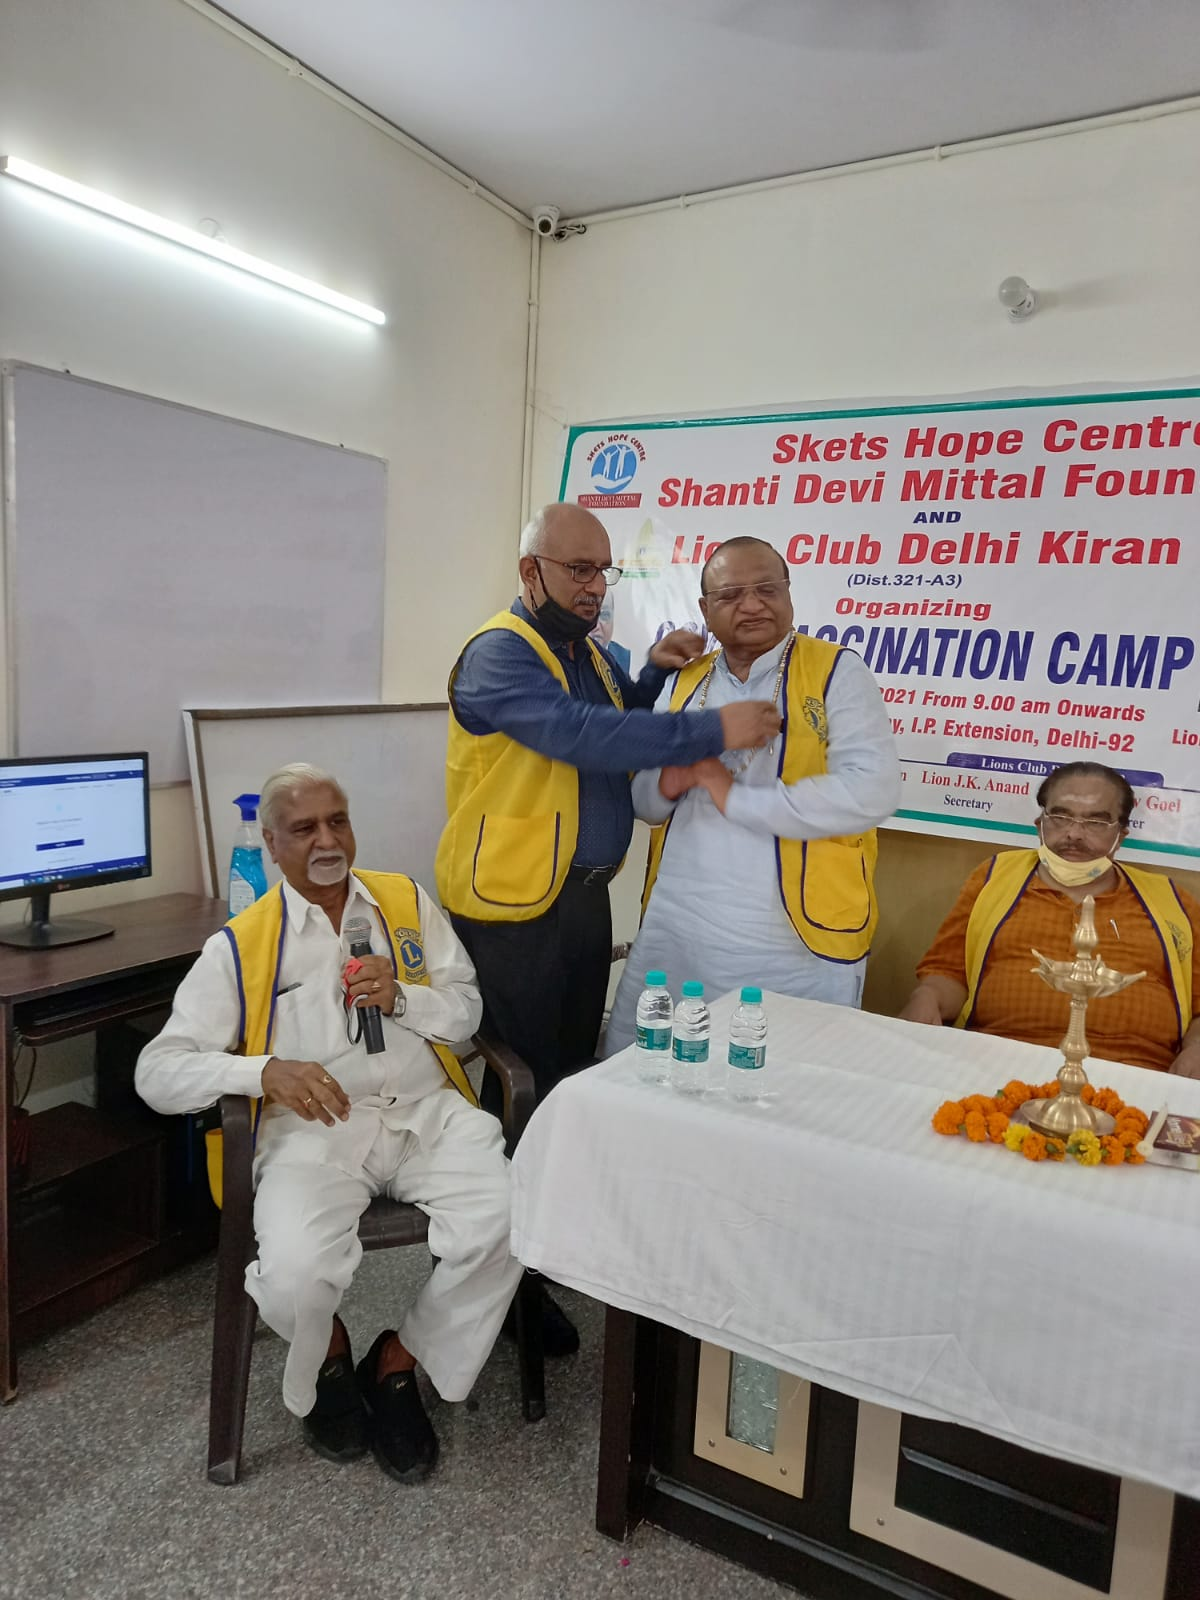 SKETS HOPE CENTRE VACCINATION